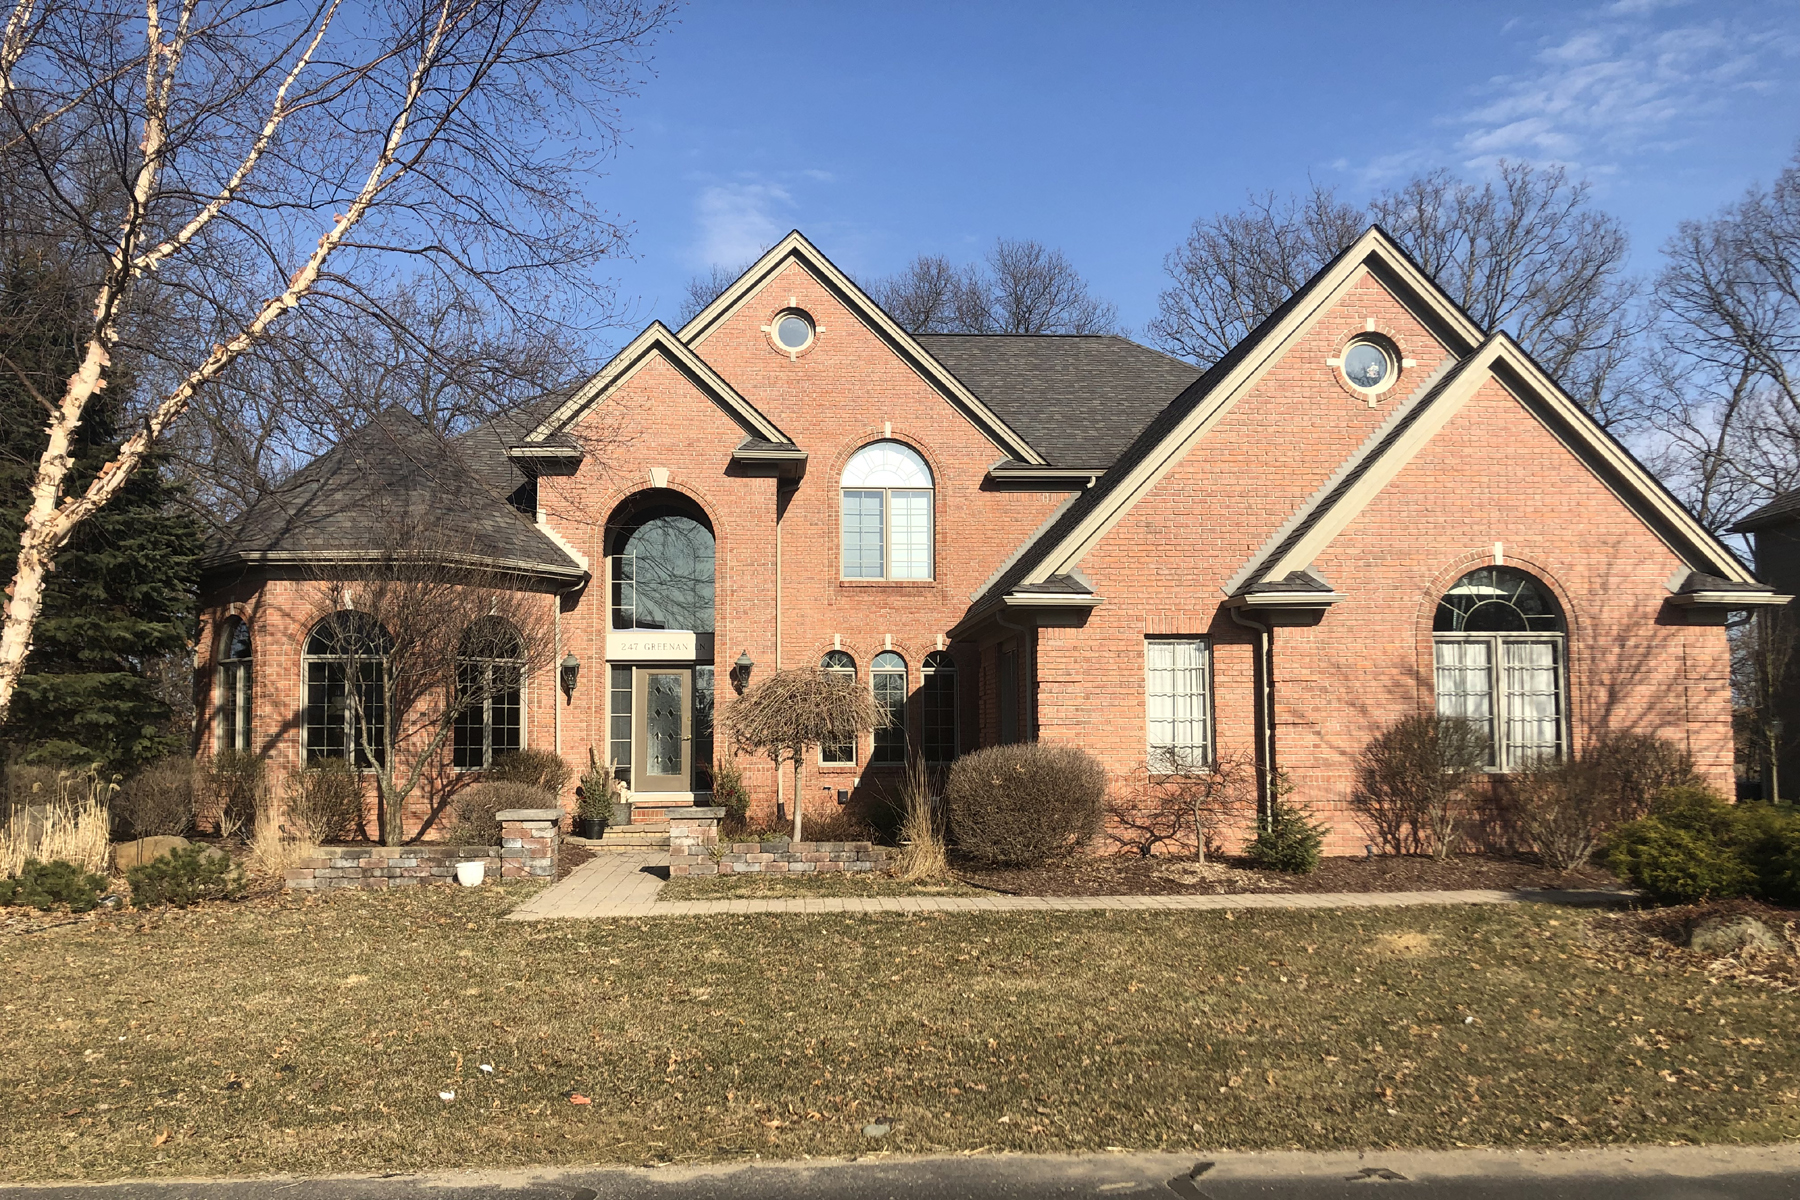 Single Family Homes for Sale at Orion Township 247 Greenan Lane Orion Township, Michigan 48362 United States